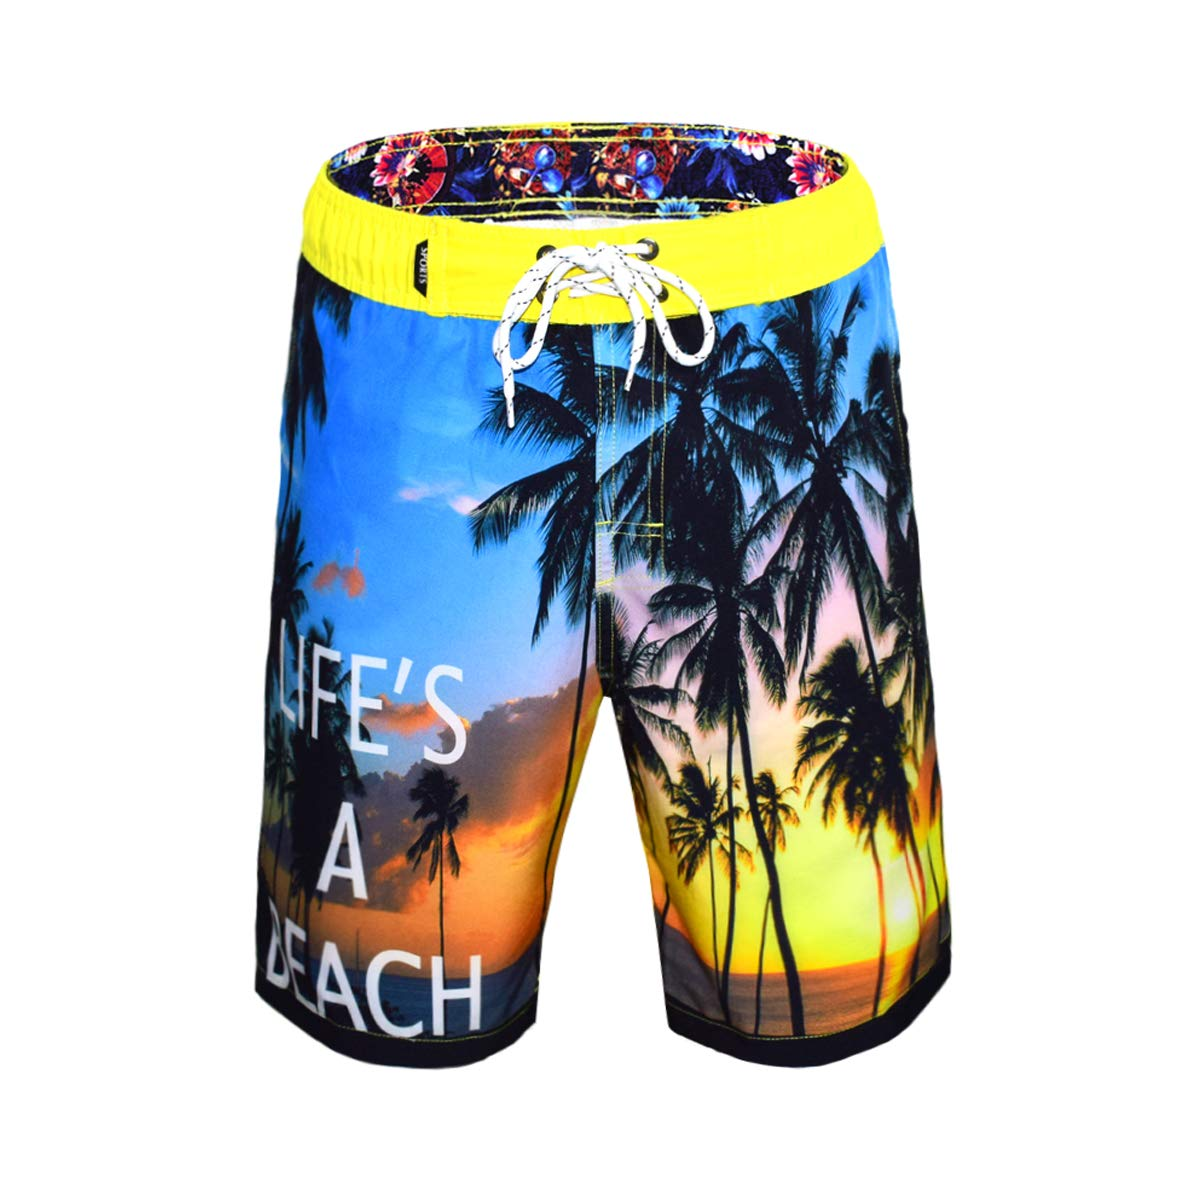 Mens Quick Dry Swim Trunks Beach Shorts with Mesh Lining